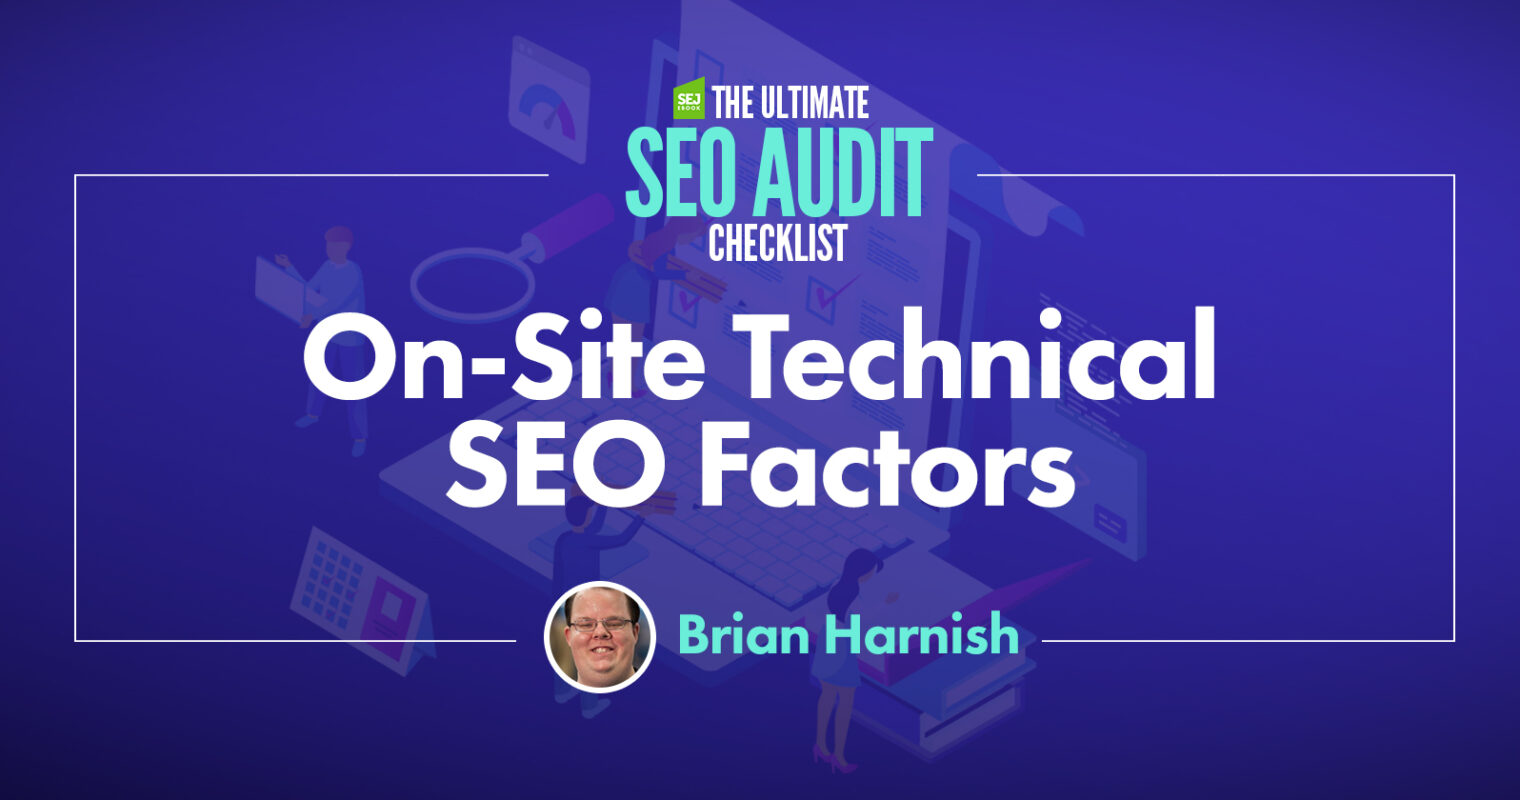 10 On-Site Technical SEO Factors to Assess in an SEO Audit